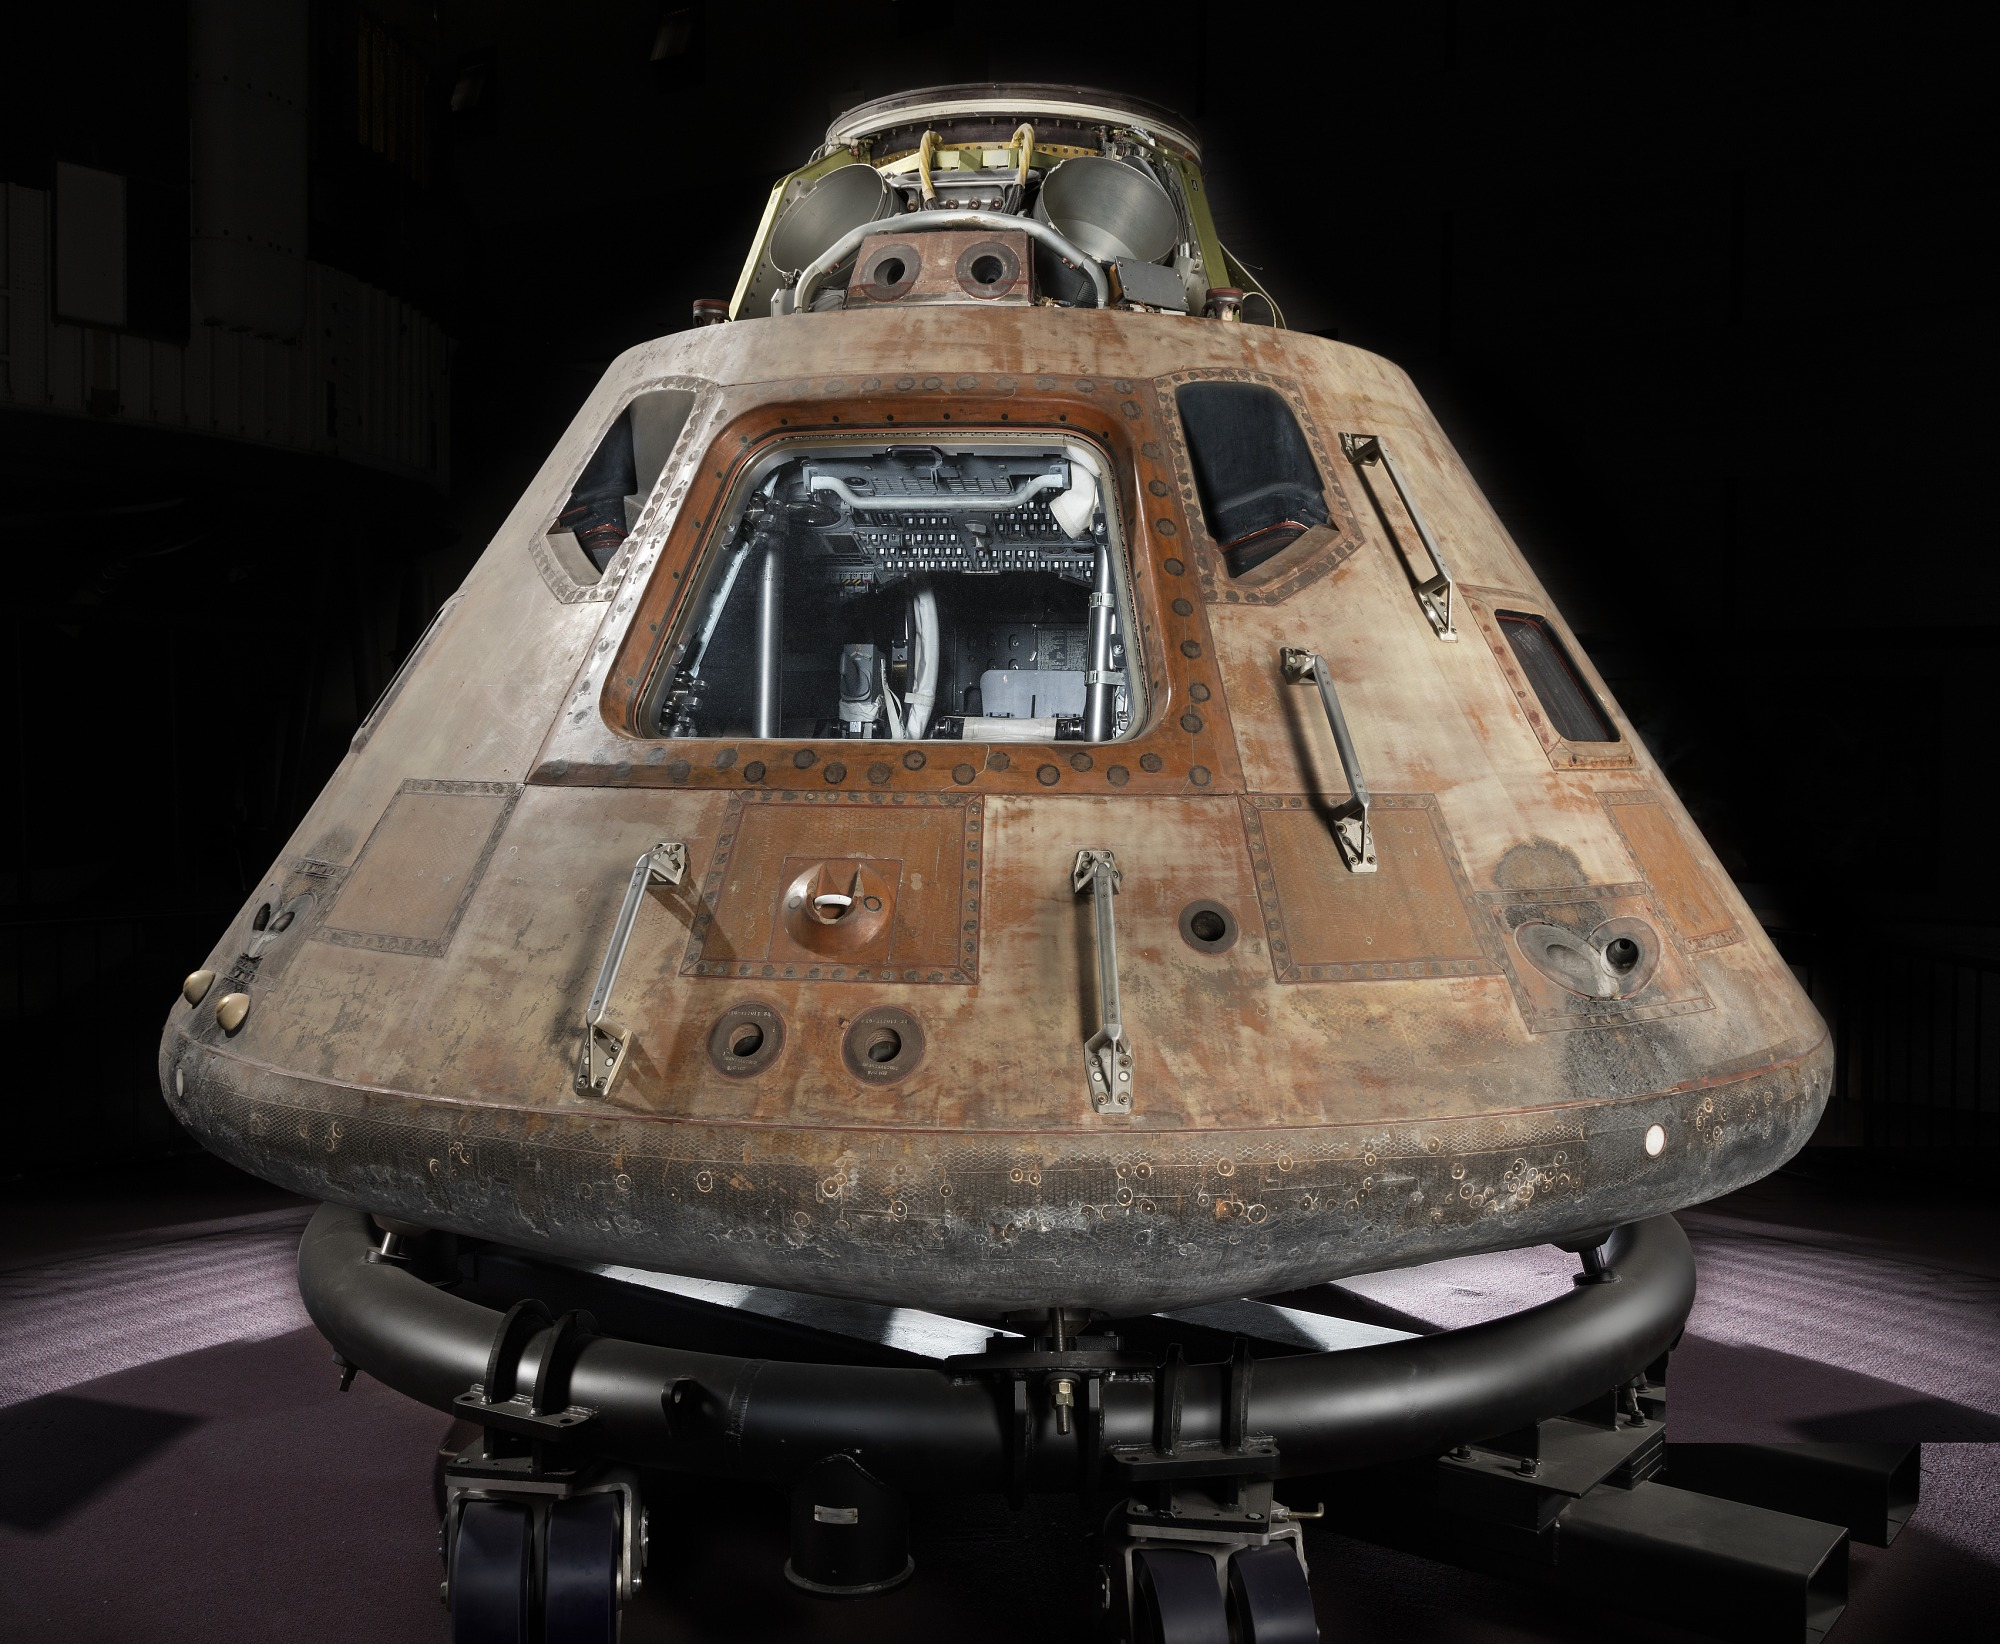 Conical-shaped spacecraft, photographed in a studio, constructed from numerous metal panels riveted together, now a rusted brown colour. Closest to the viewer is a rectangular hatch, with several small 'side' windows.